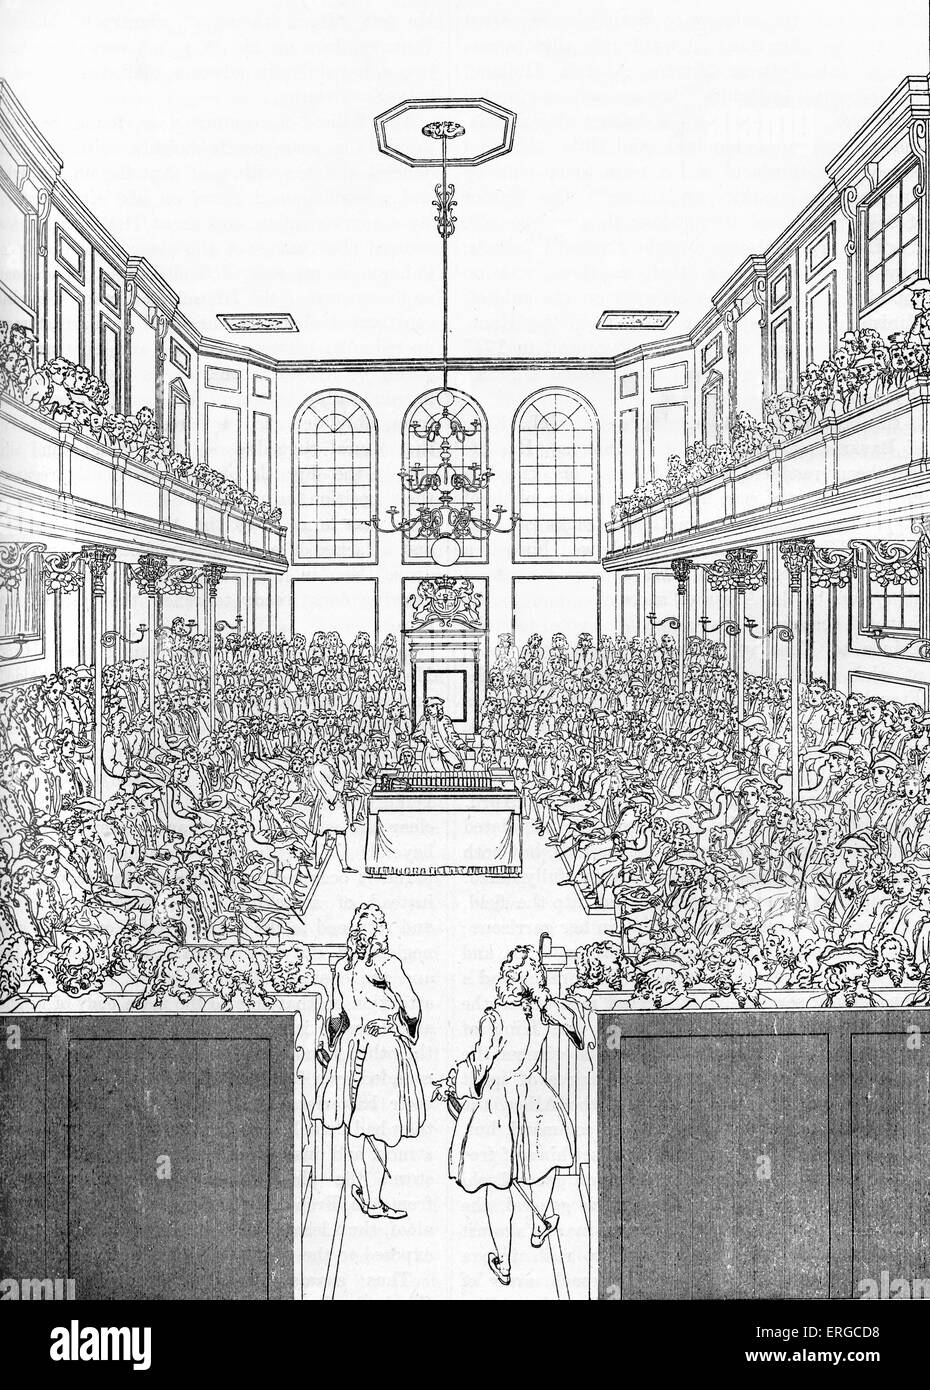 Inside House Drawing: House Of Commons In London, 1742